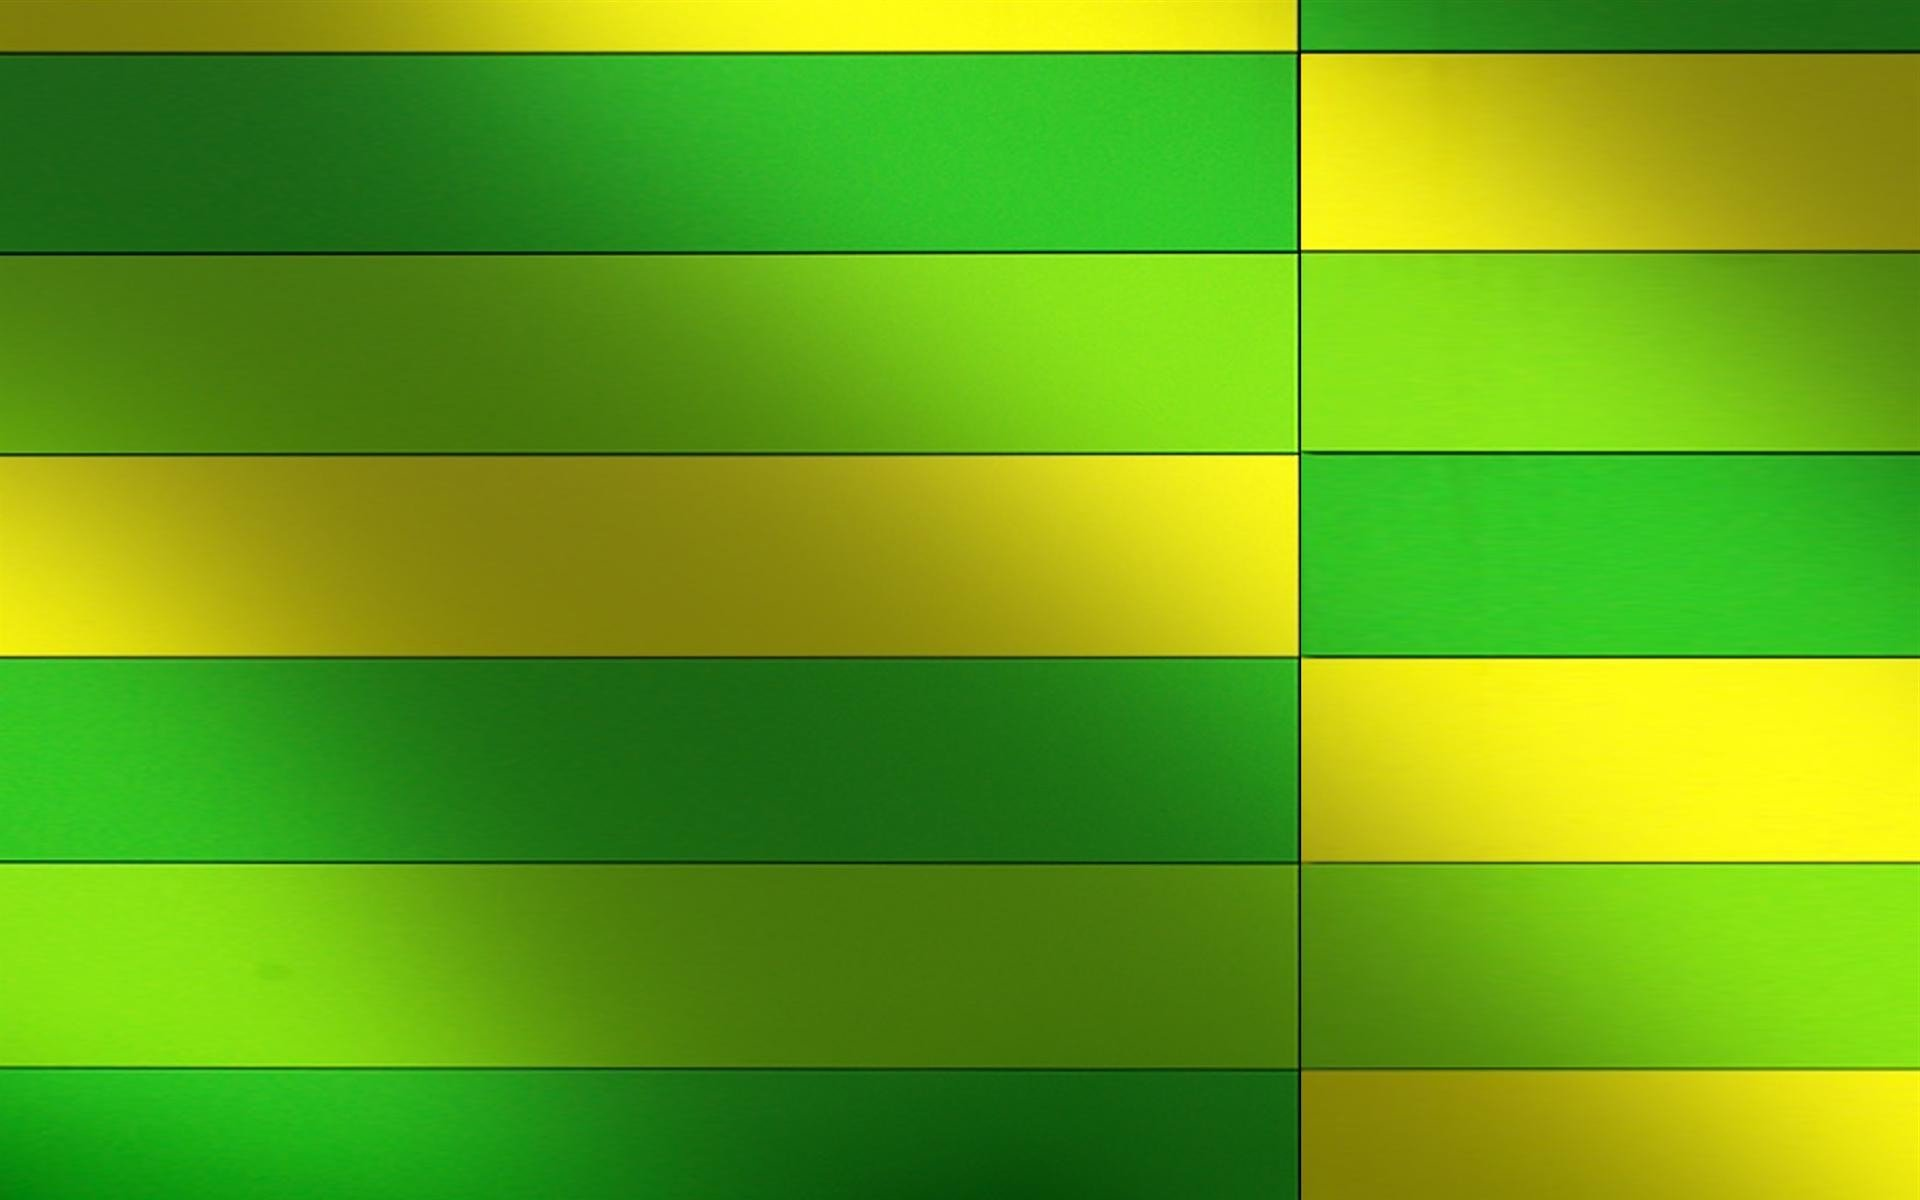 Green And Yellow Wallpaper Wallpapersafari